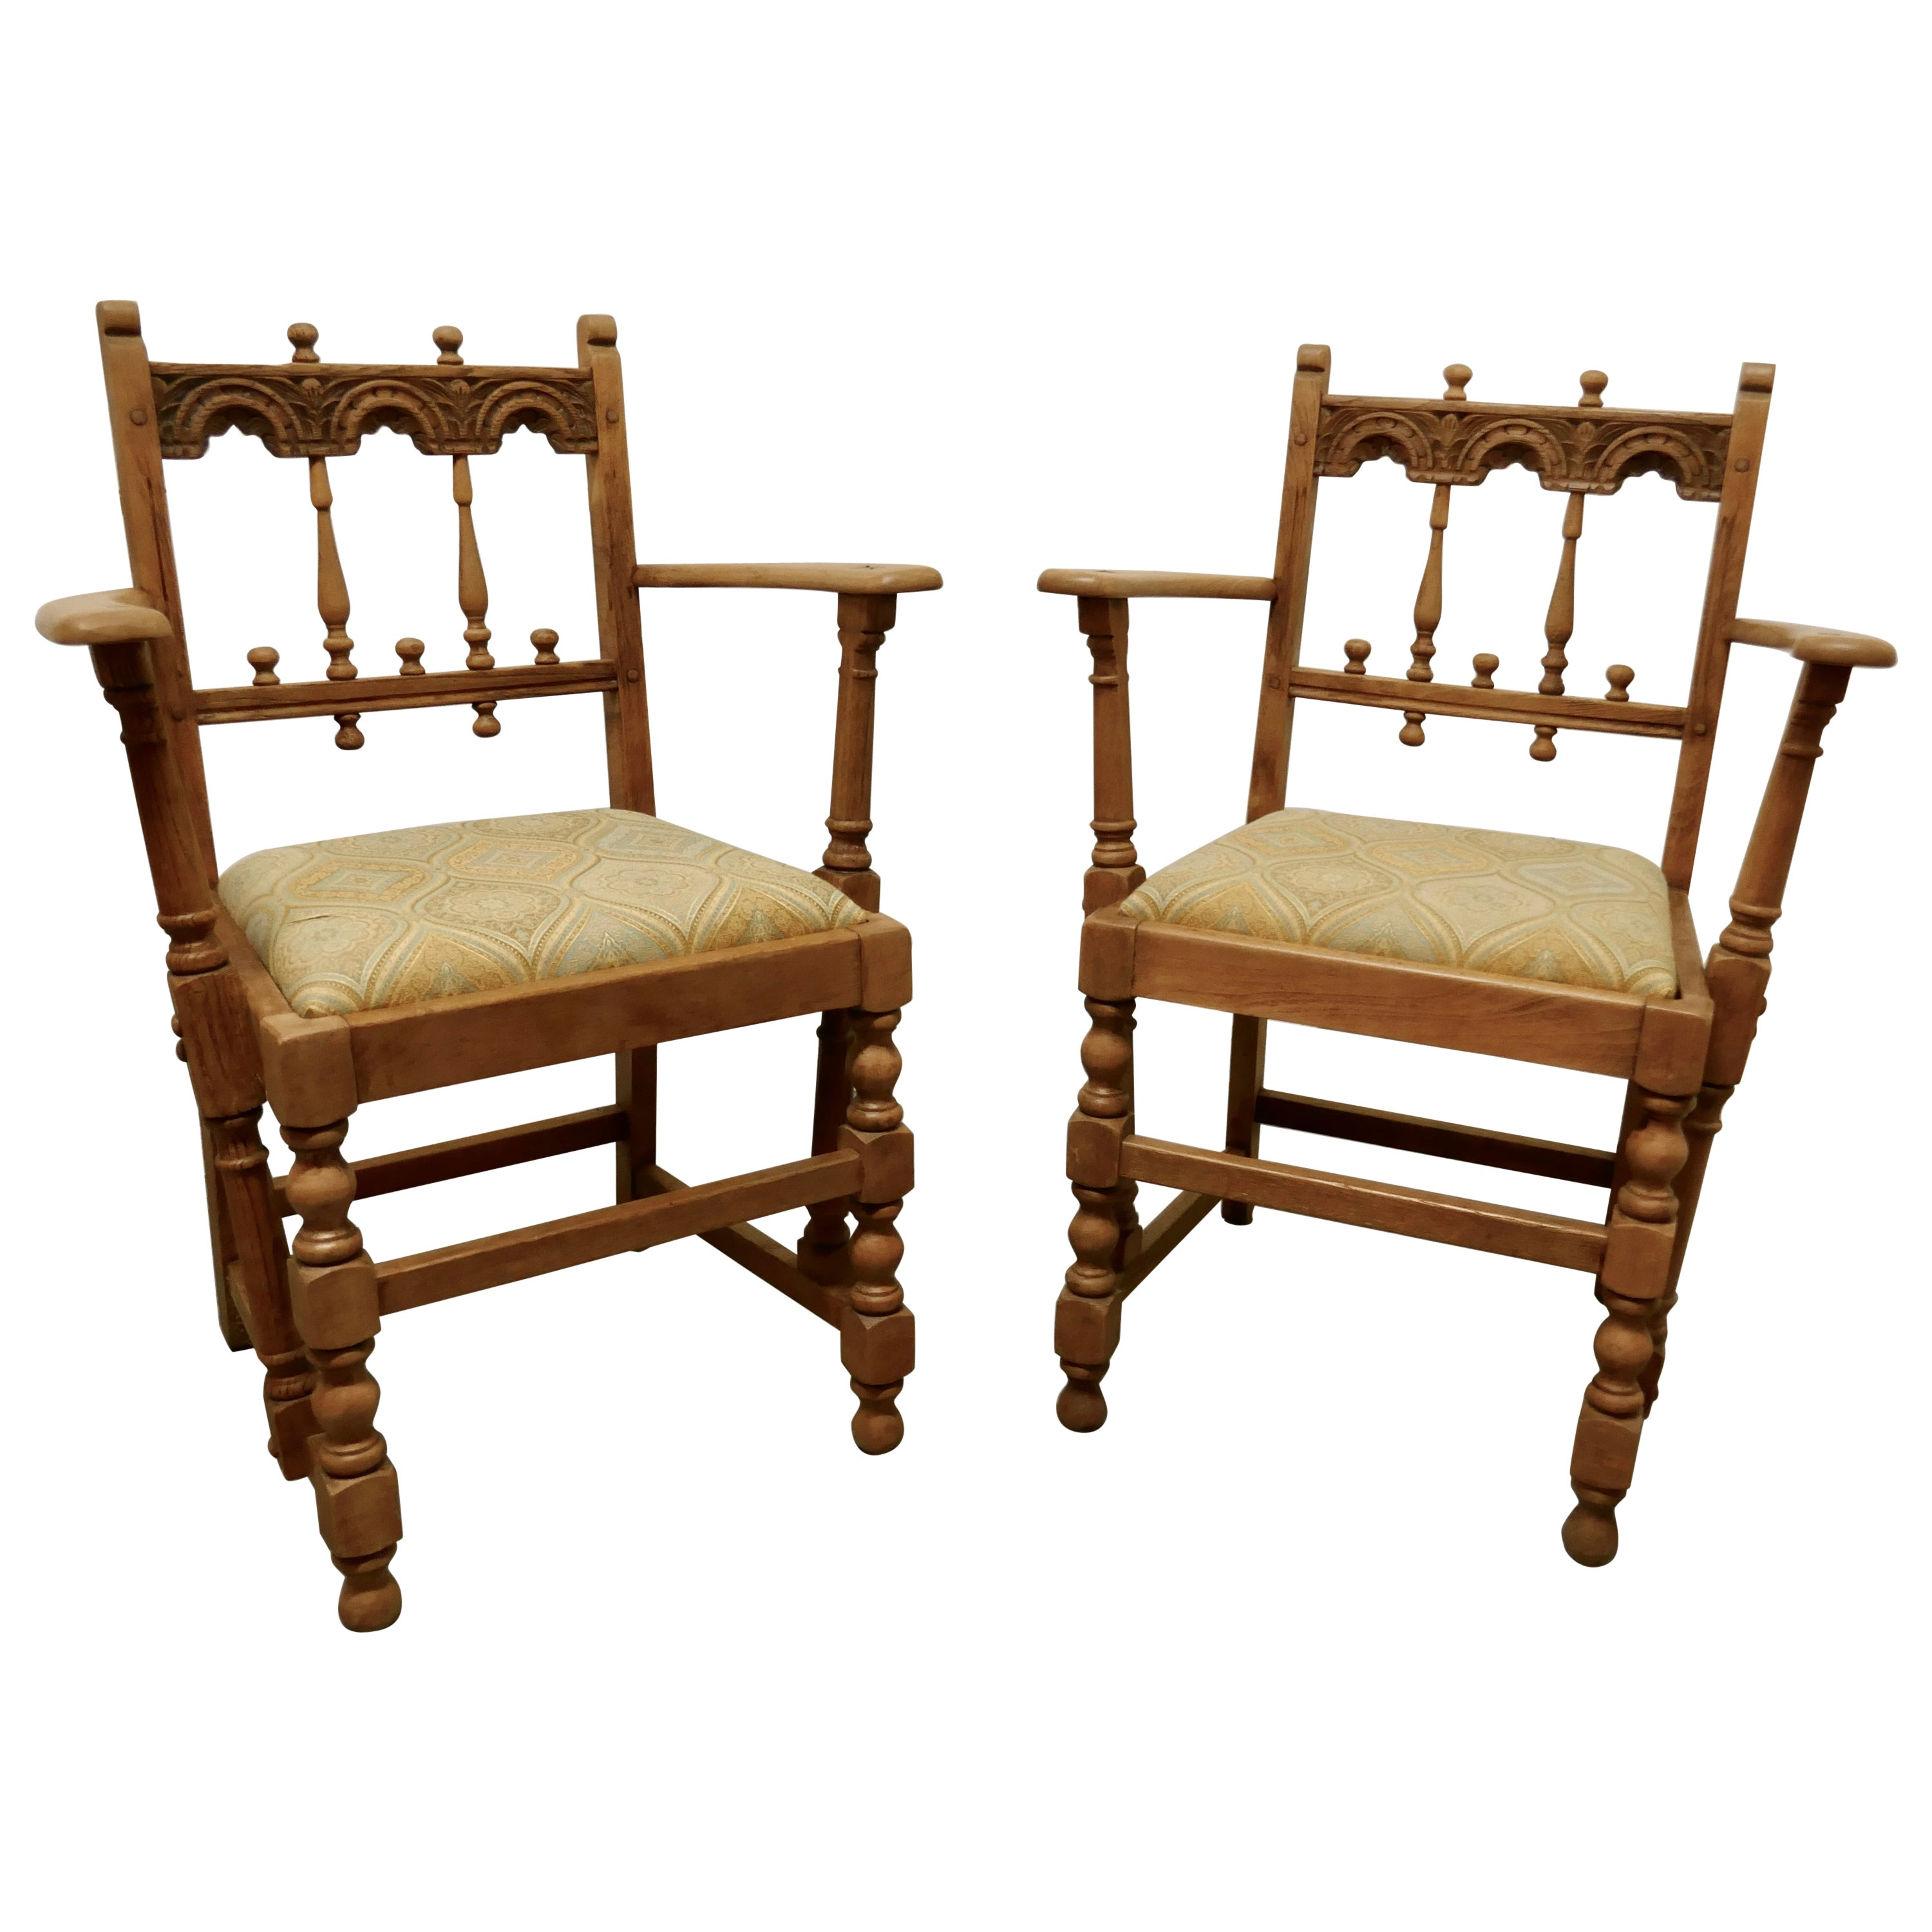 Pair of Arts & Crafts Gothic Bleached Oak Hall Chairs